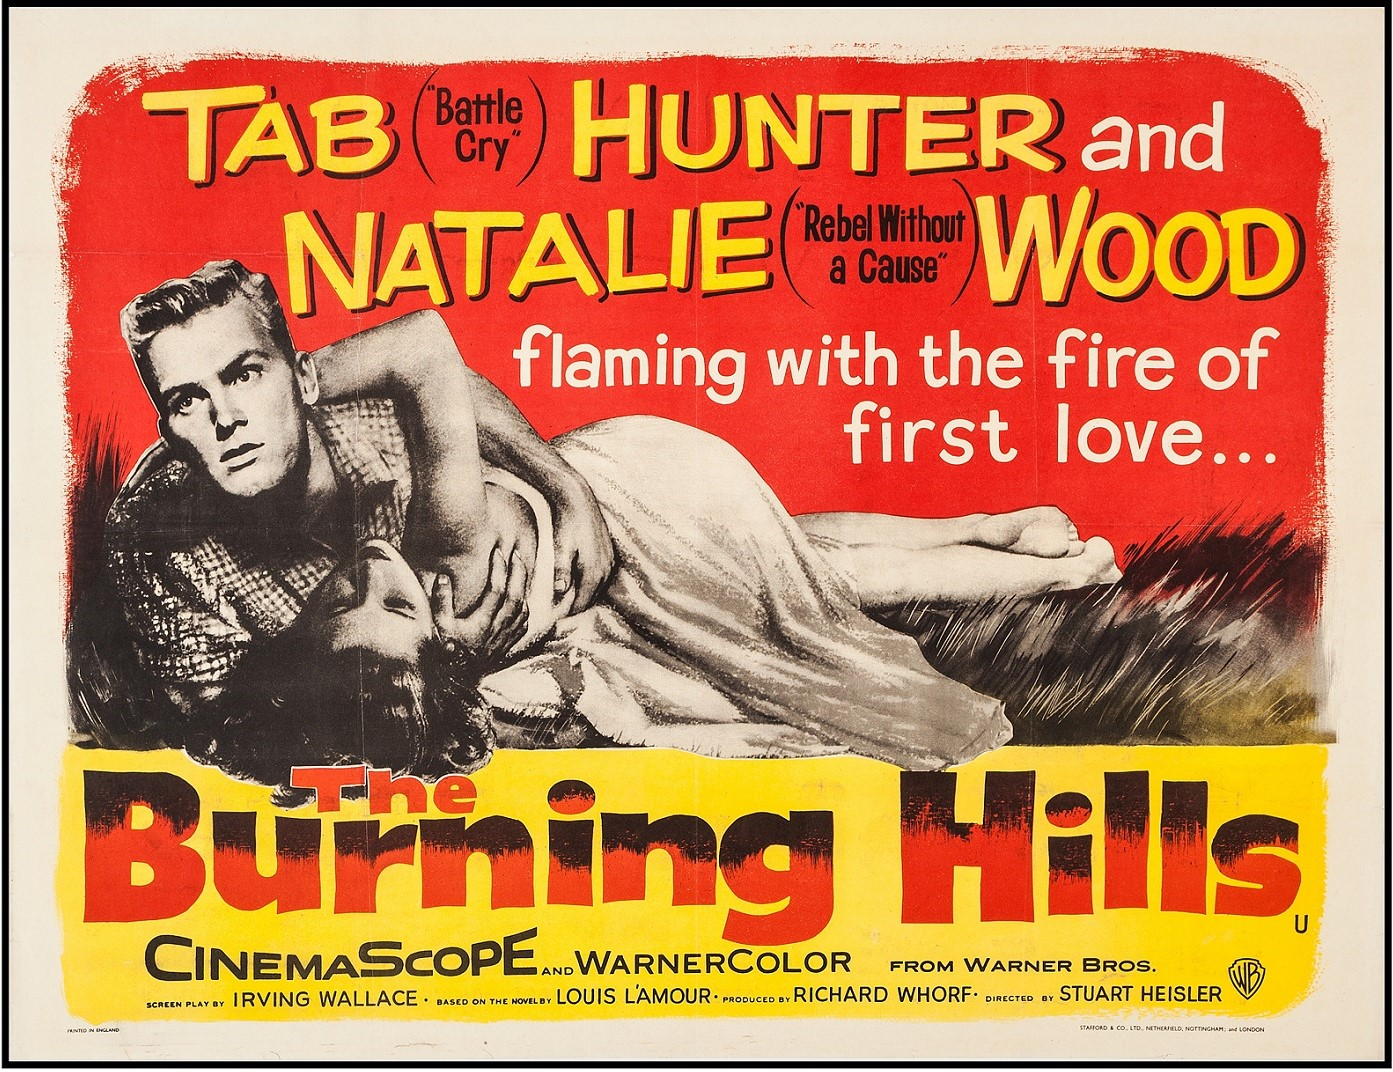 THE BURNING HILLS (1956) WEB SITE